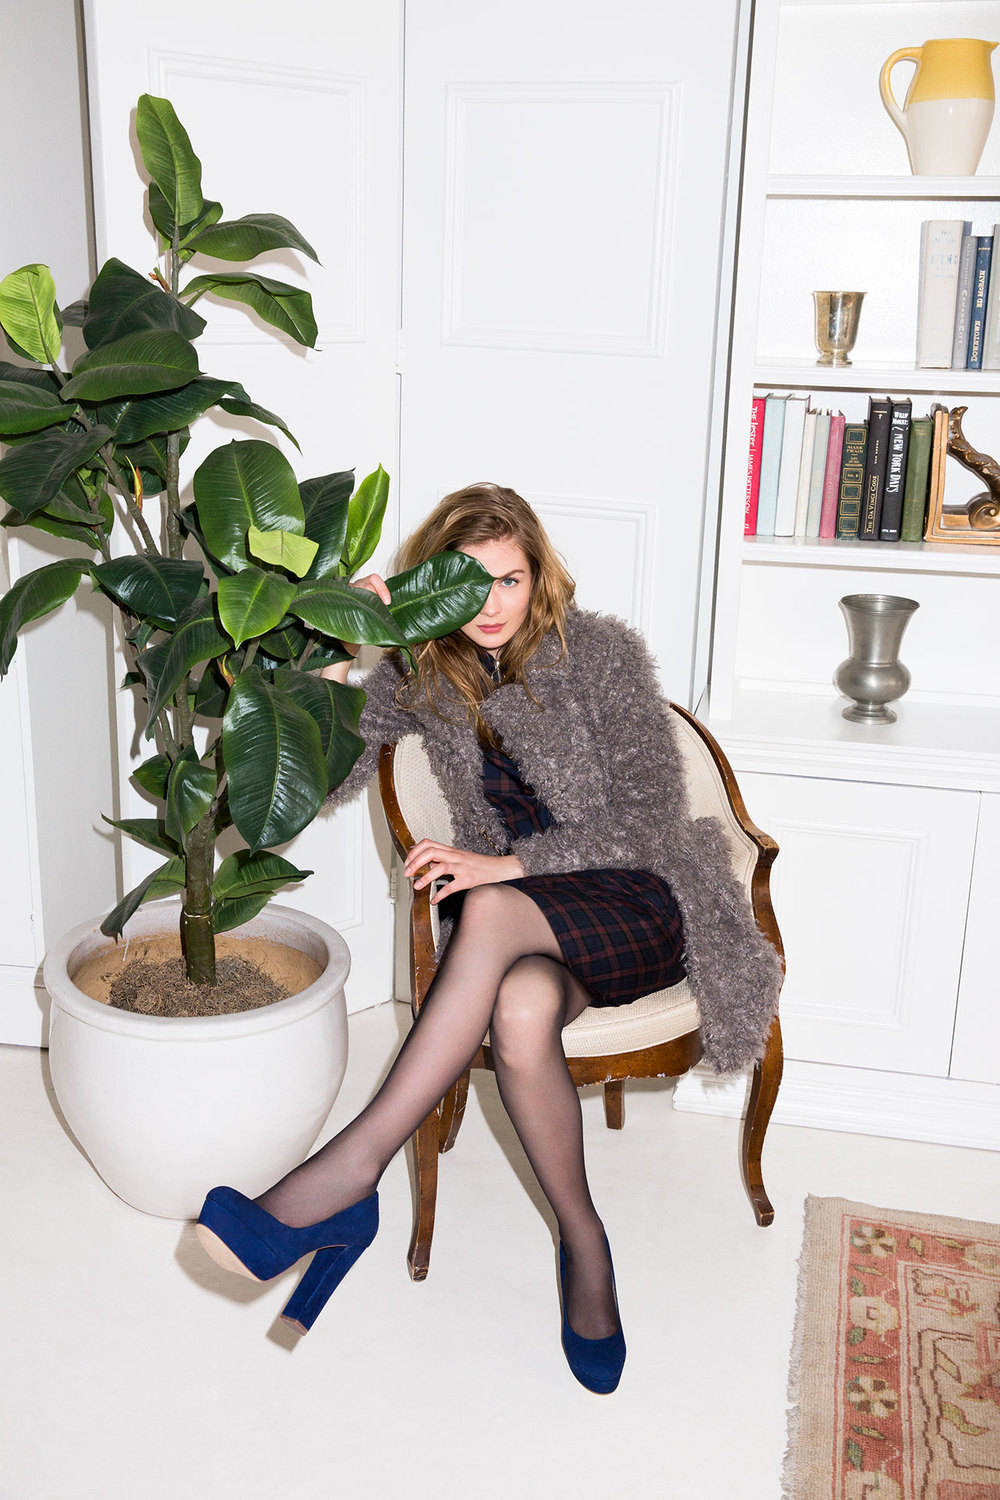 steve-madden-fw15-campaign-styled-by-andrea-messier-cuomo-20.jpg